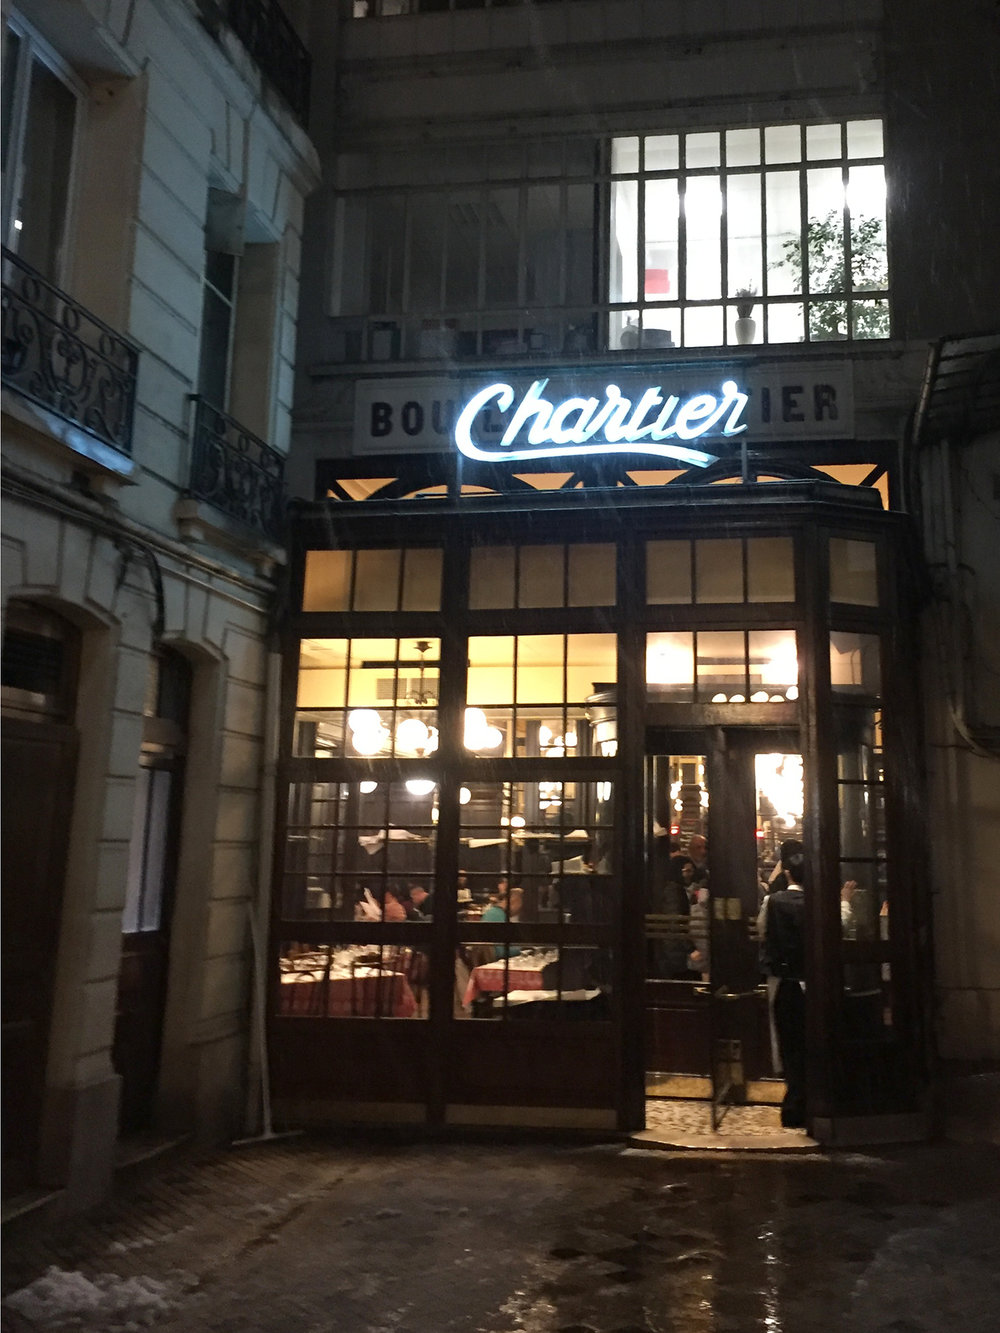 From 7 rue du Faubourg Montmartre, enter the stone courtyard to reach the revolving door entrance to Bouillon Chartier.